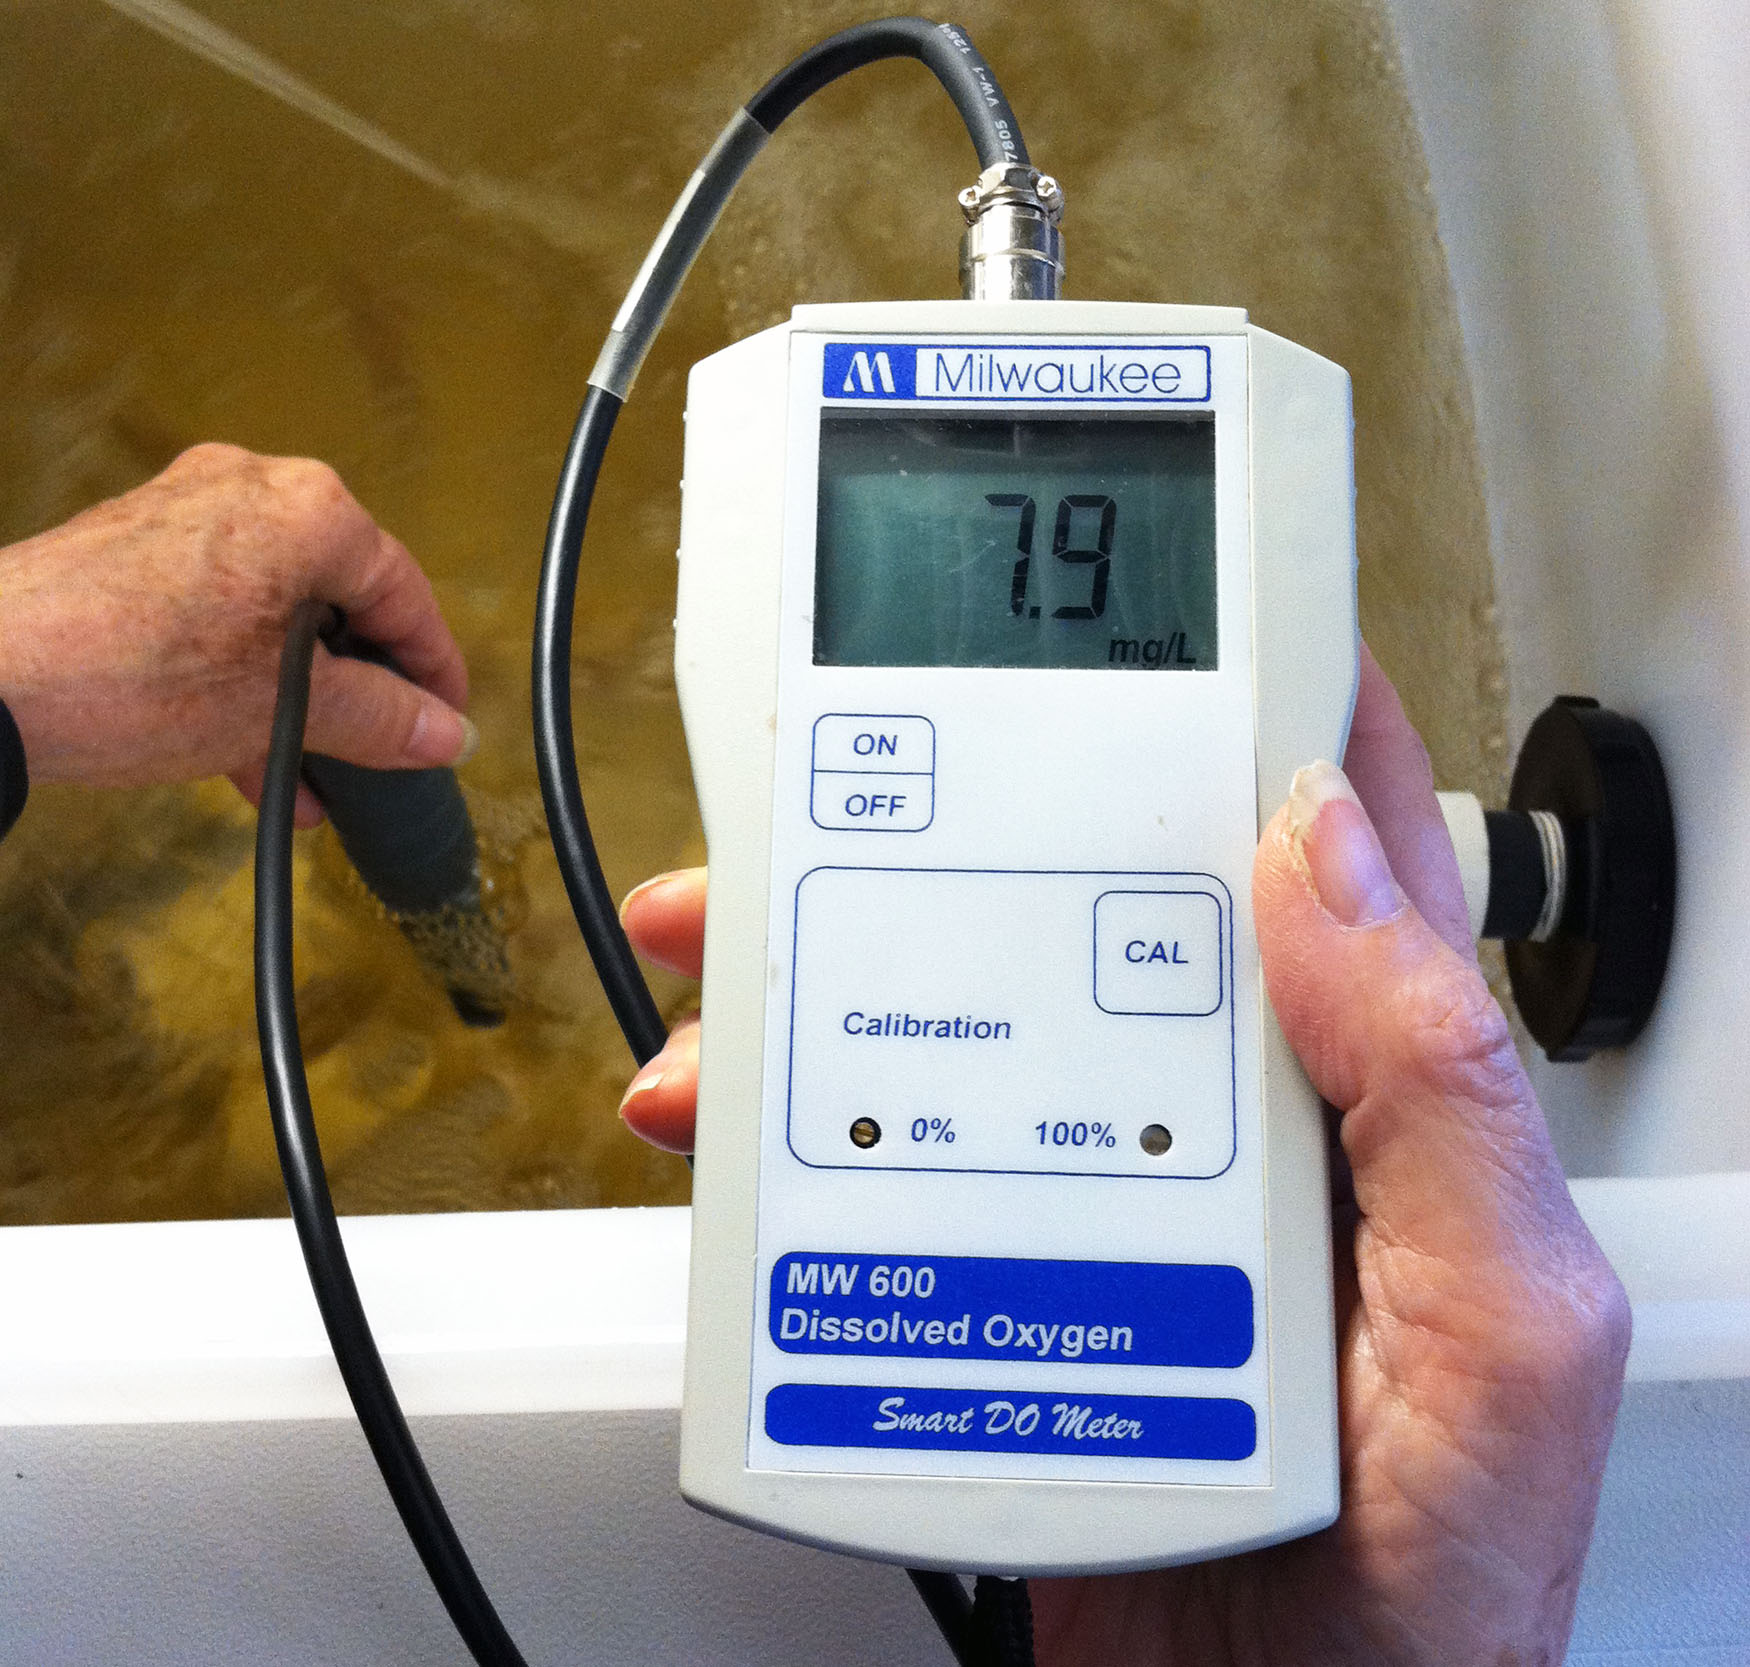 DO Meter Reading the level of Dissolved Oxygen in the Mini FFGS-M5 Fish Tank